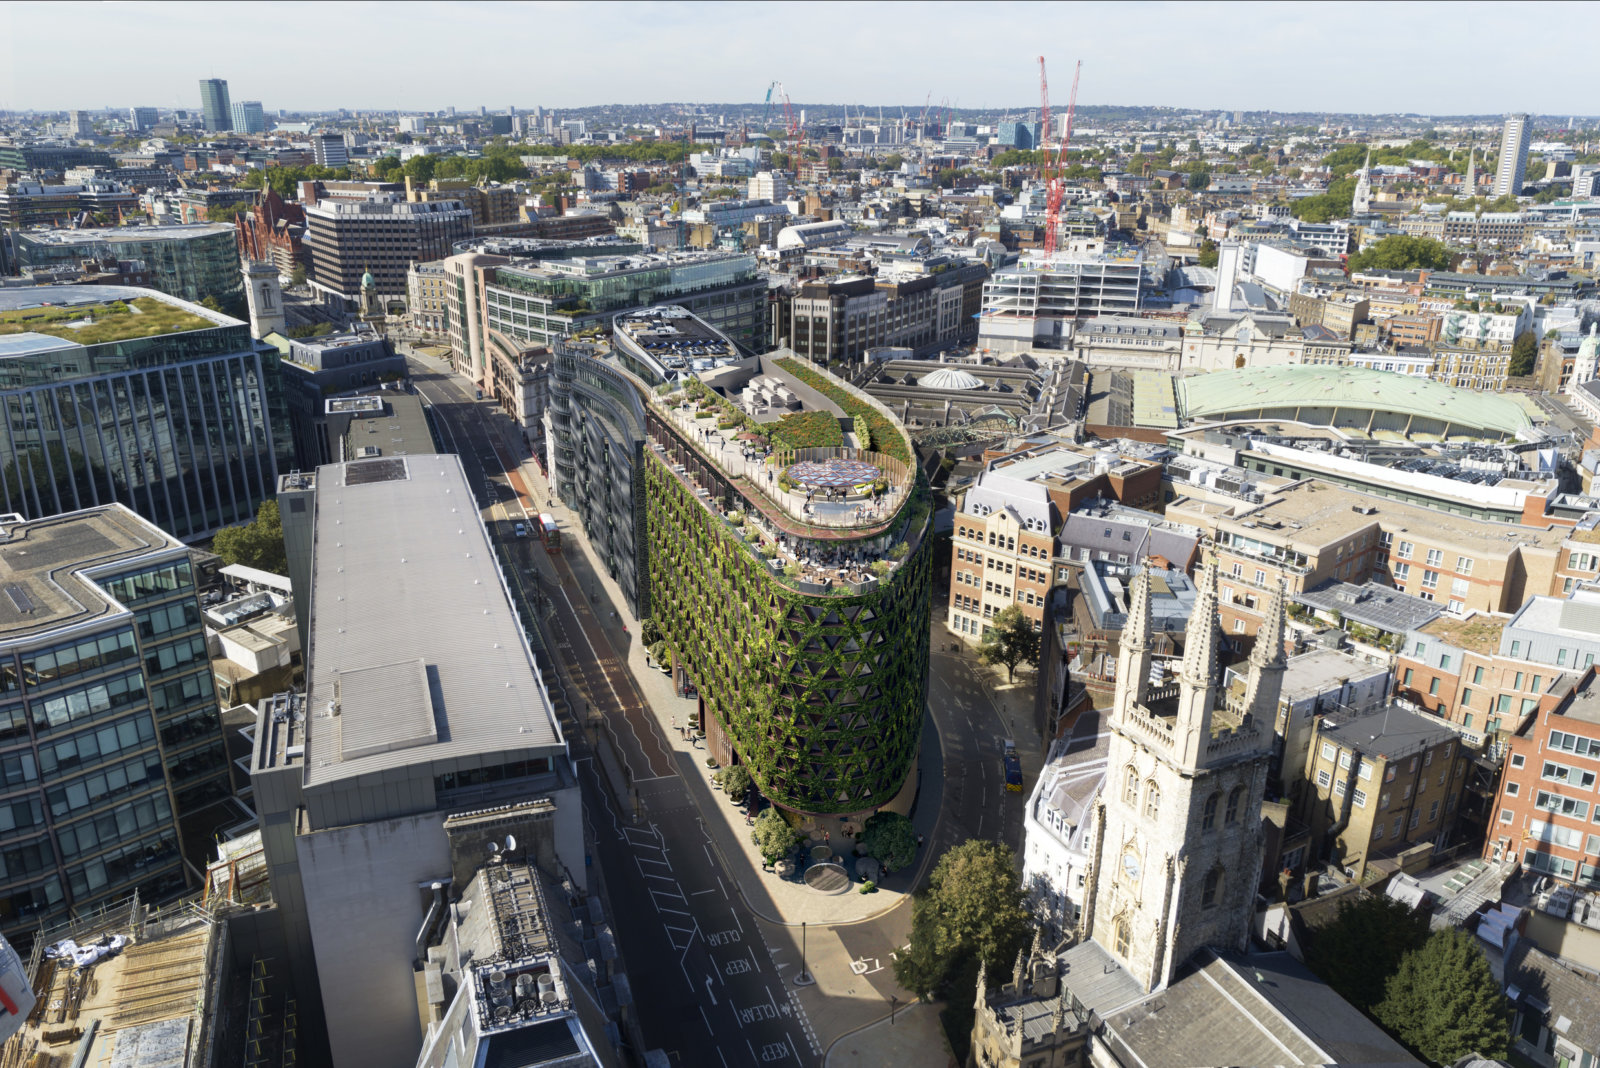 London Cityscape as it will look featuring new living wall